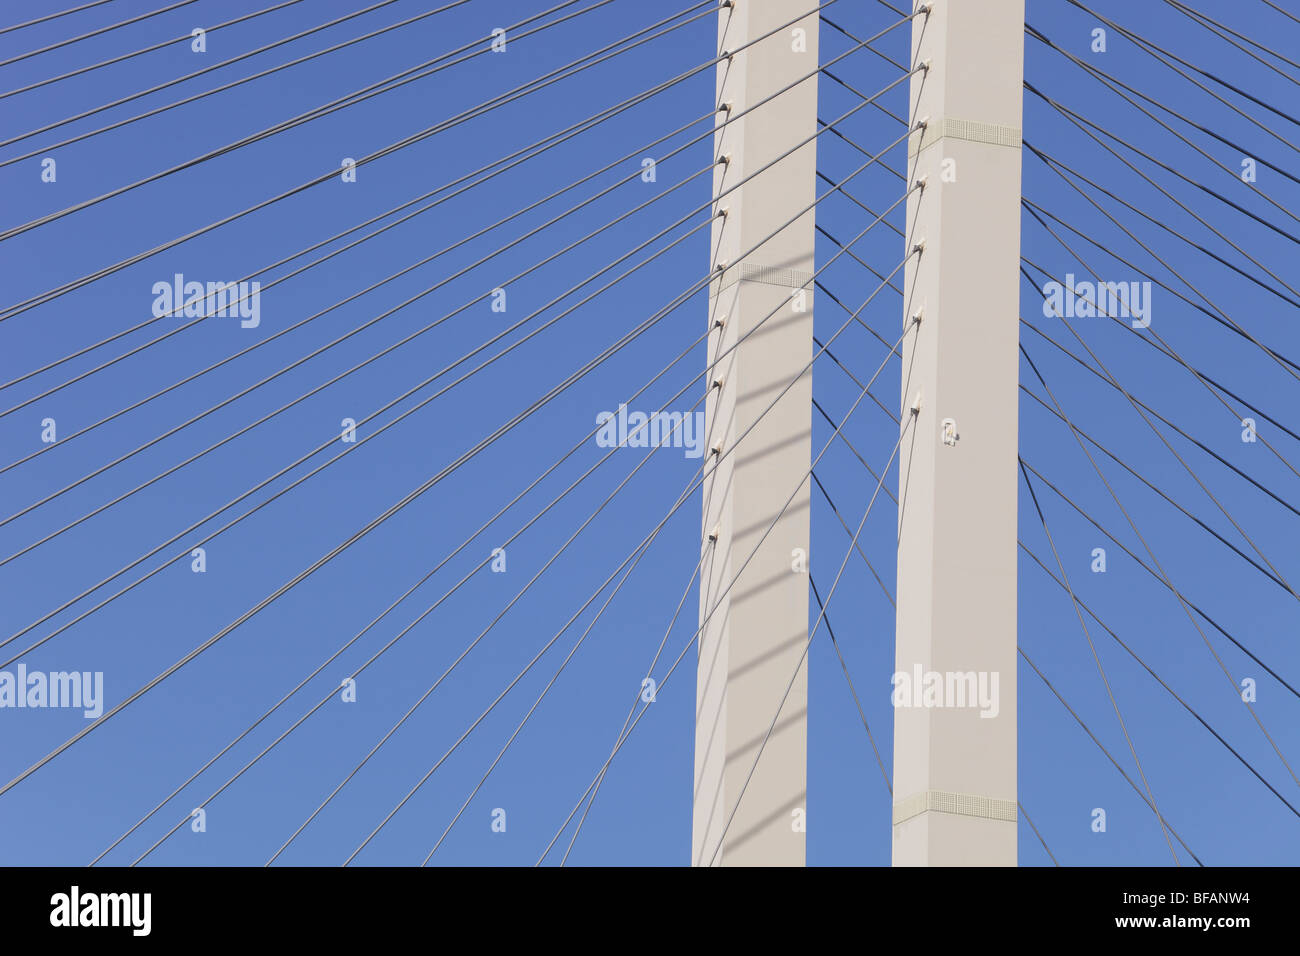 Detail shot of the structure of The Queen Elizabeth Bridge over the river Thames at Dartford, photographed from - Stock Image